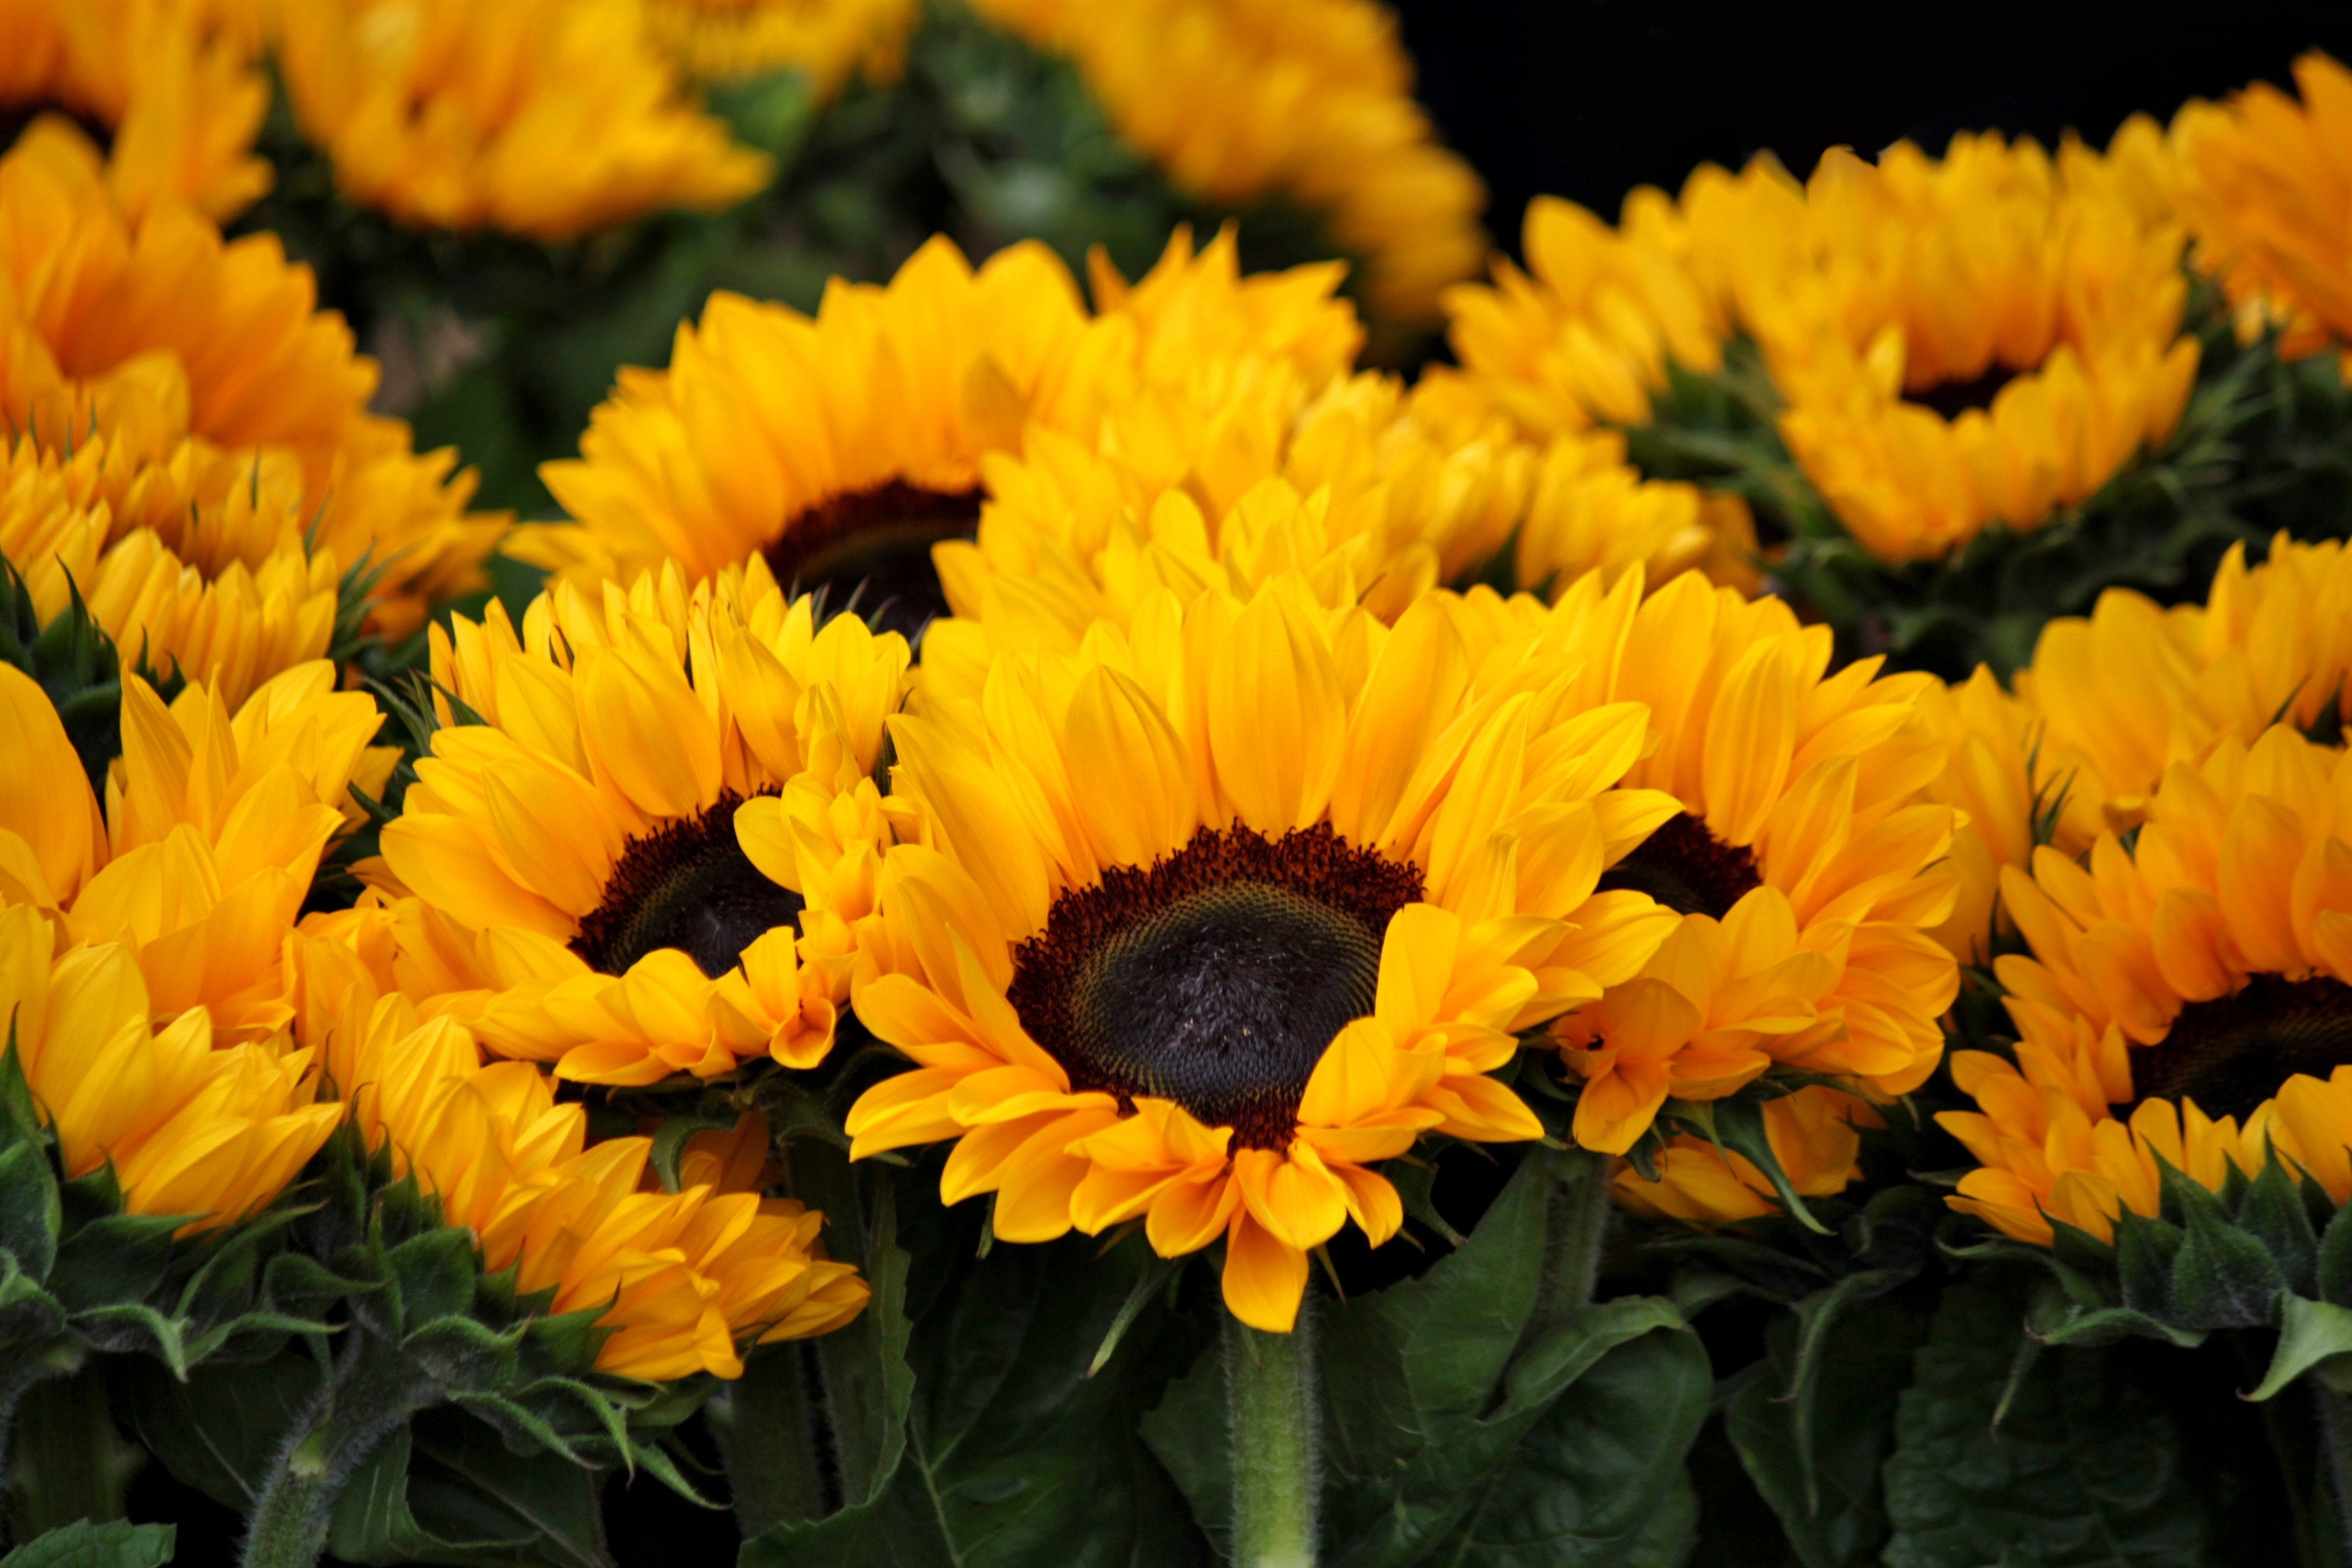 Sunflower Aesthetic Wallpapers - Top Free Sunflower ...